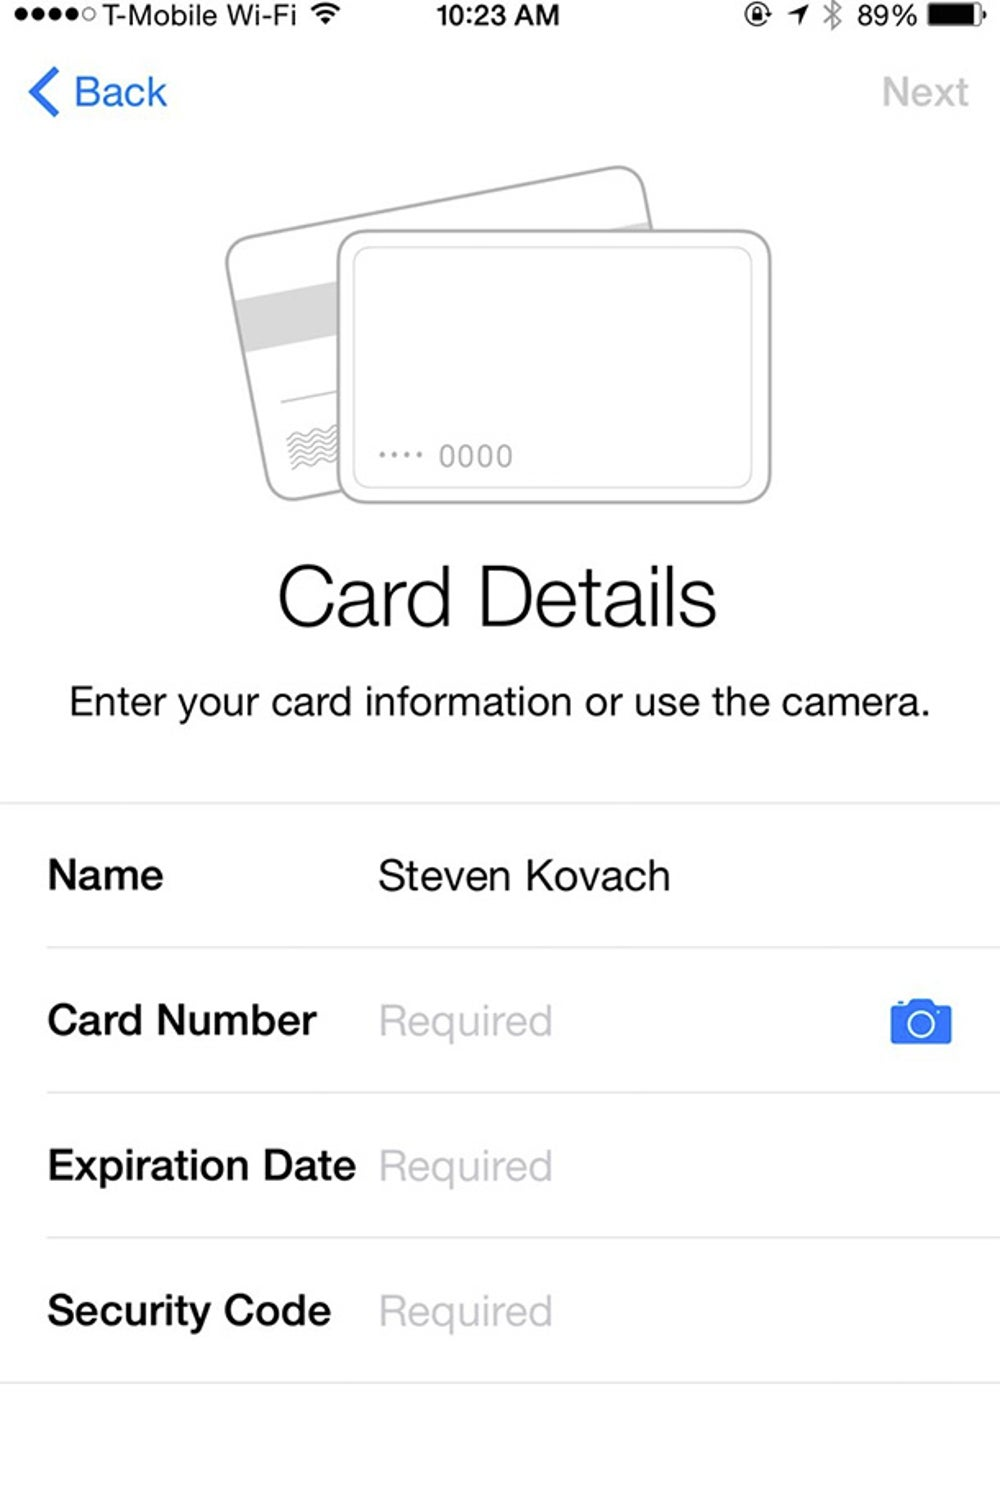 The easiest way to input a new card is to take a photo of it. Tap the camera icon.